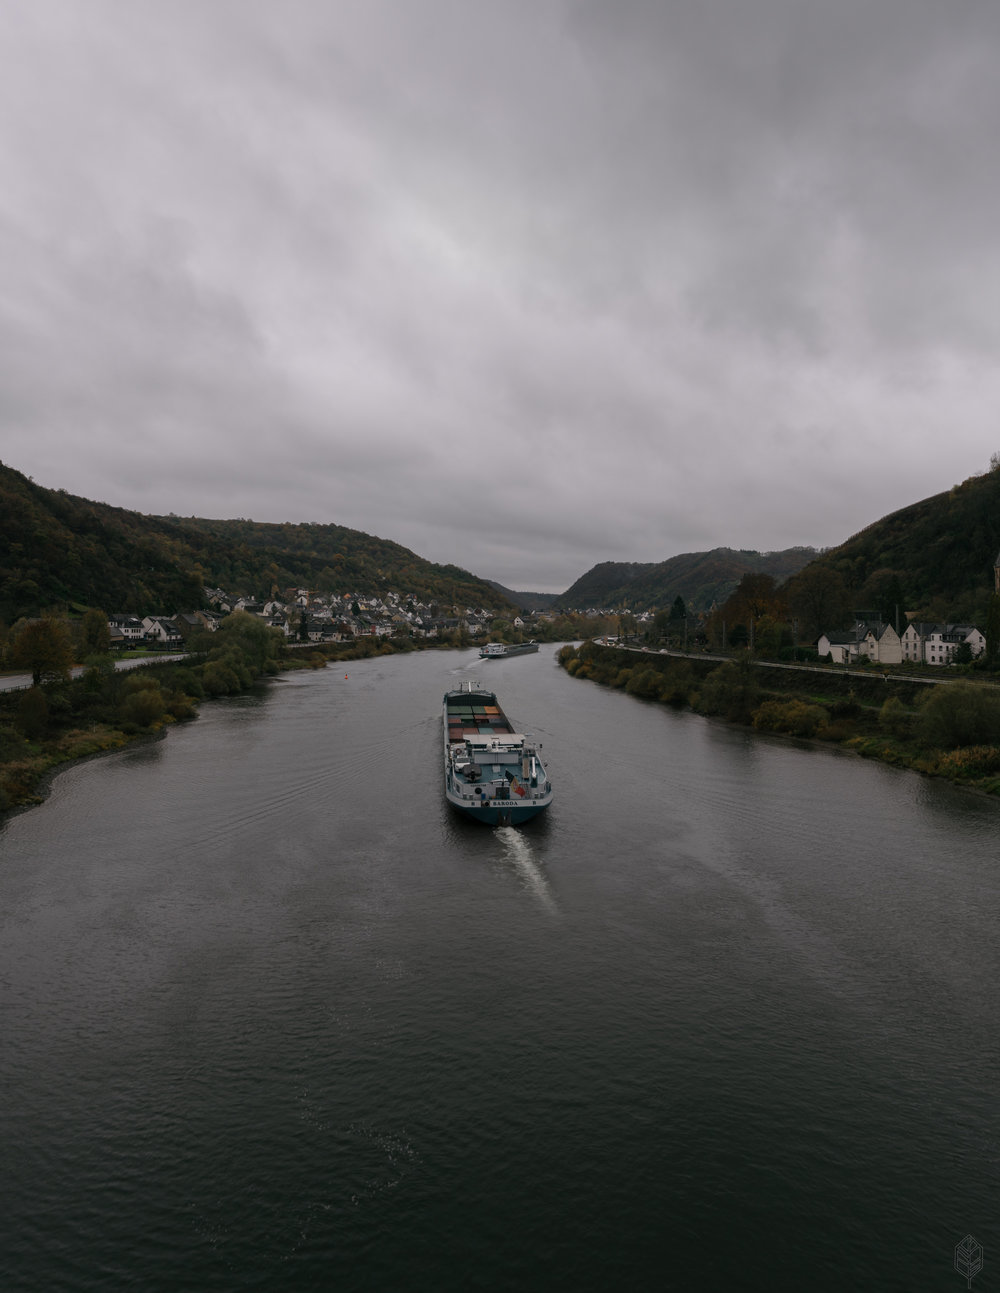 Ships on the Moselle